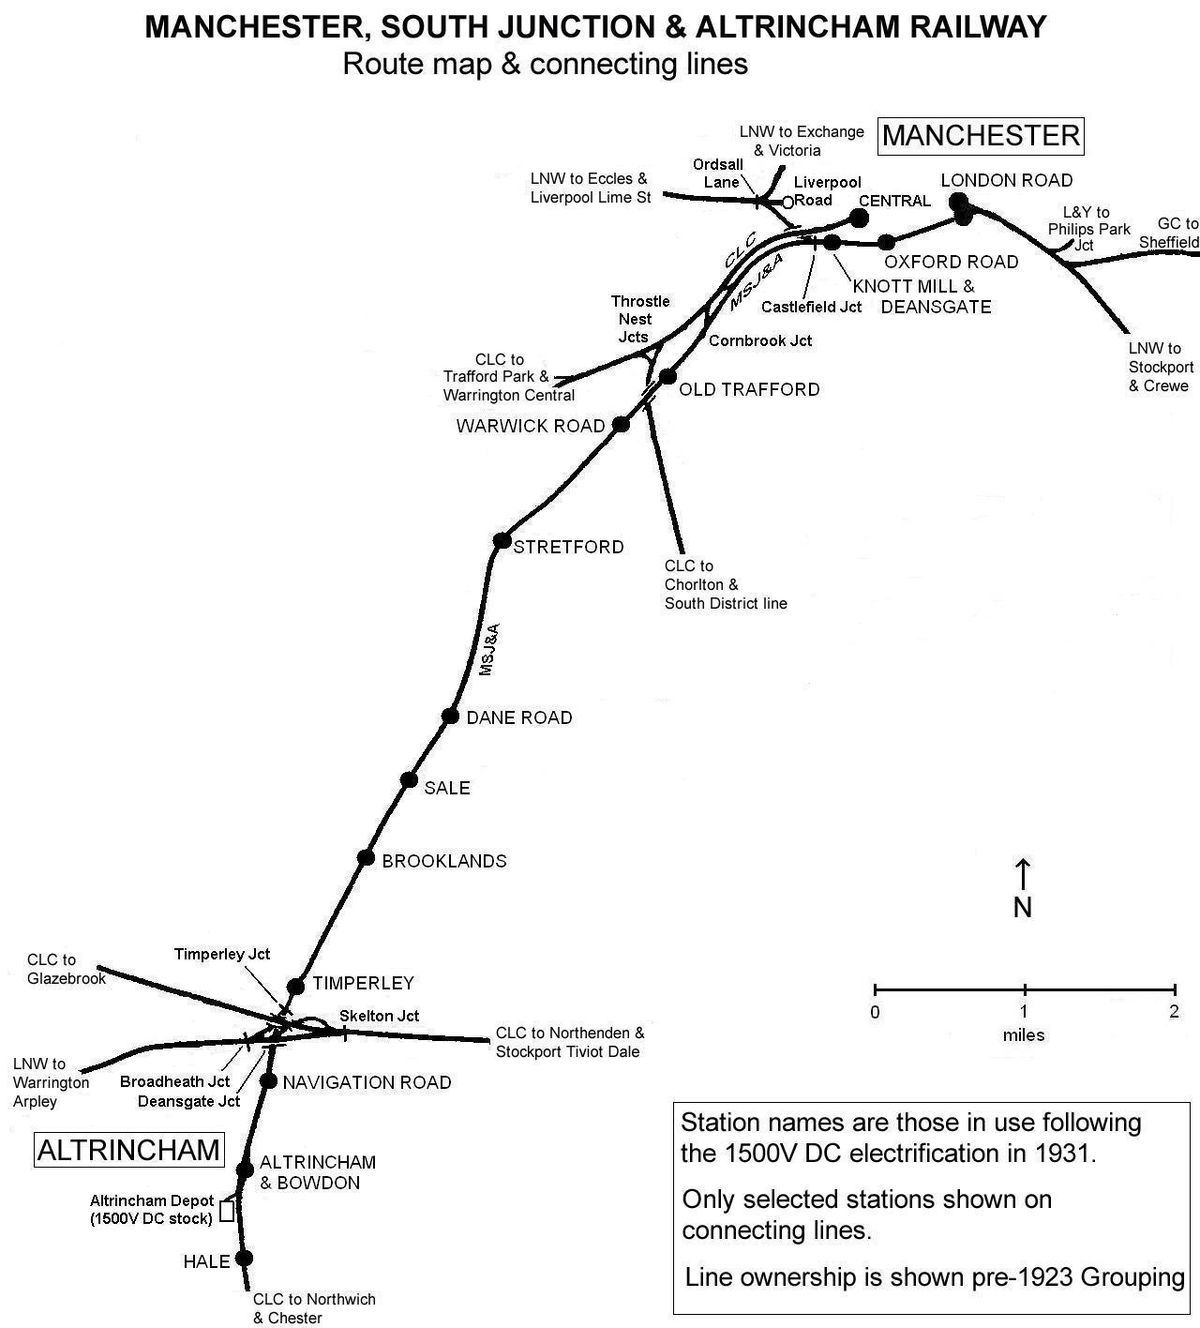 Manchester South Junction and Altrincham Railway Wikipedia